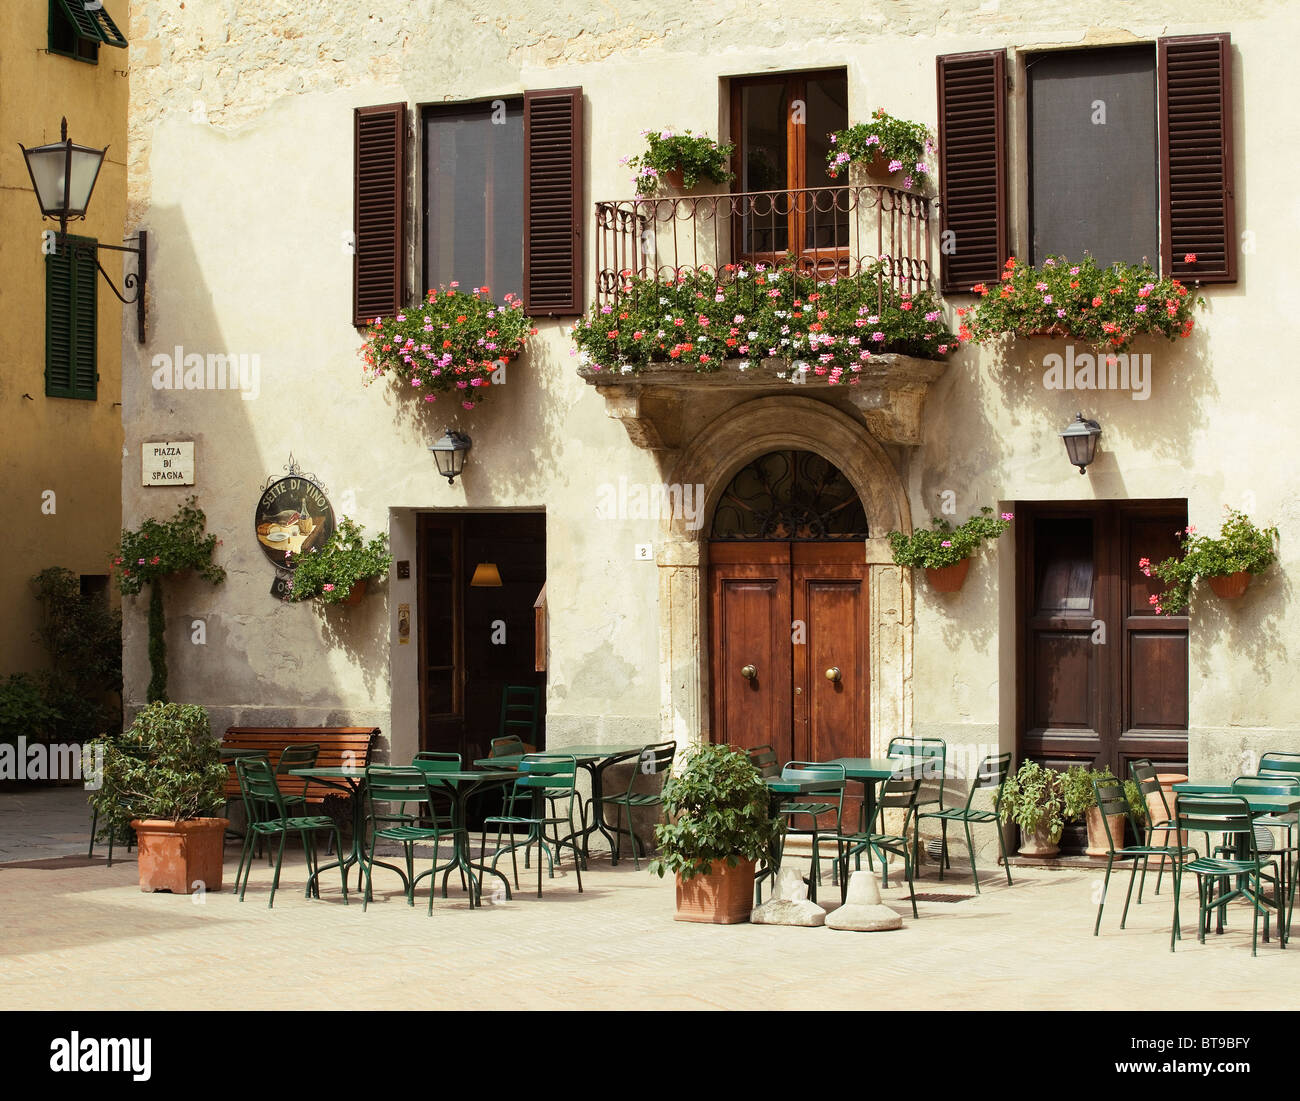 Pienza, showing outdoor cafe / resturant with balcony - Tuscany,  Italy - Stock Image